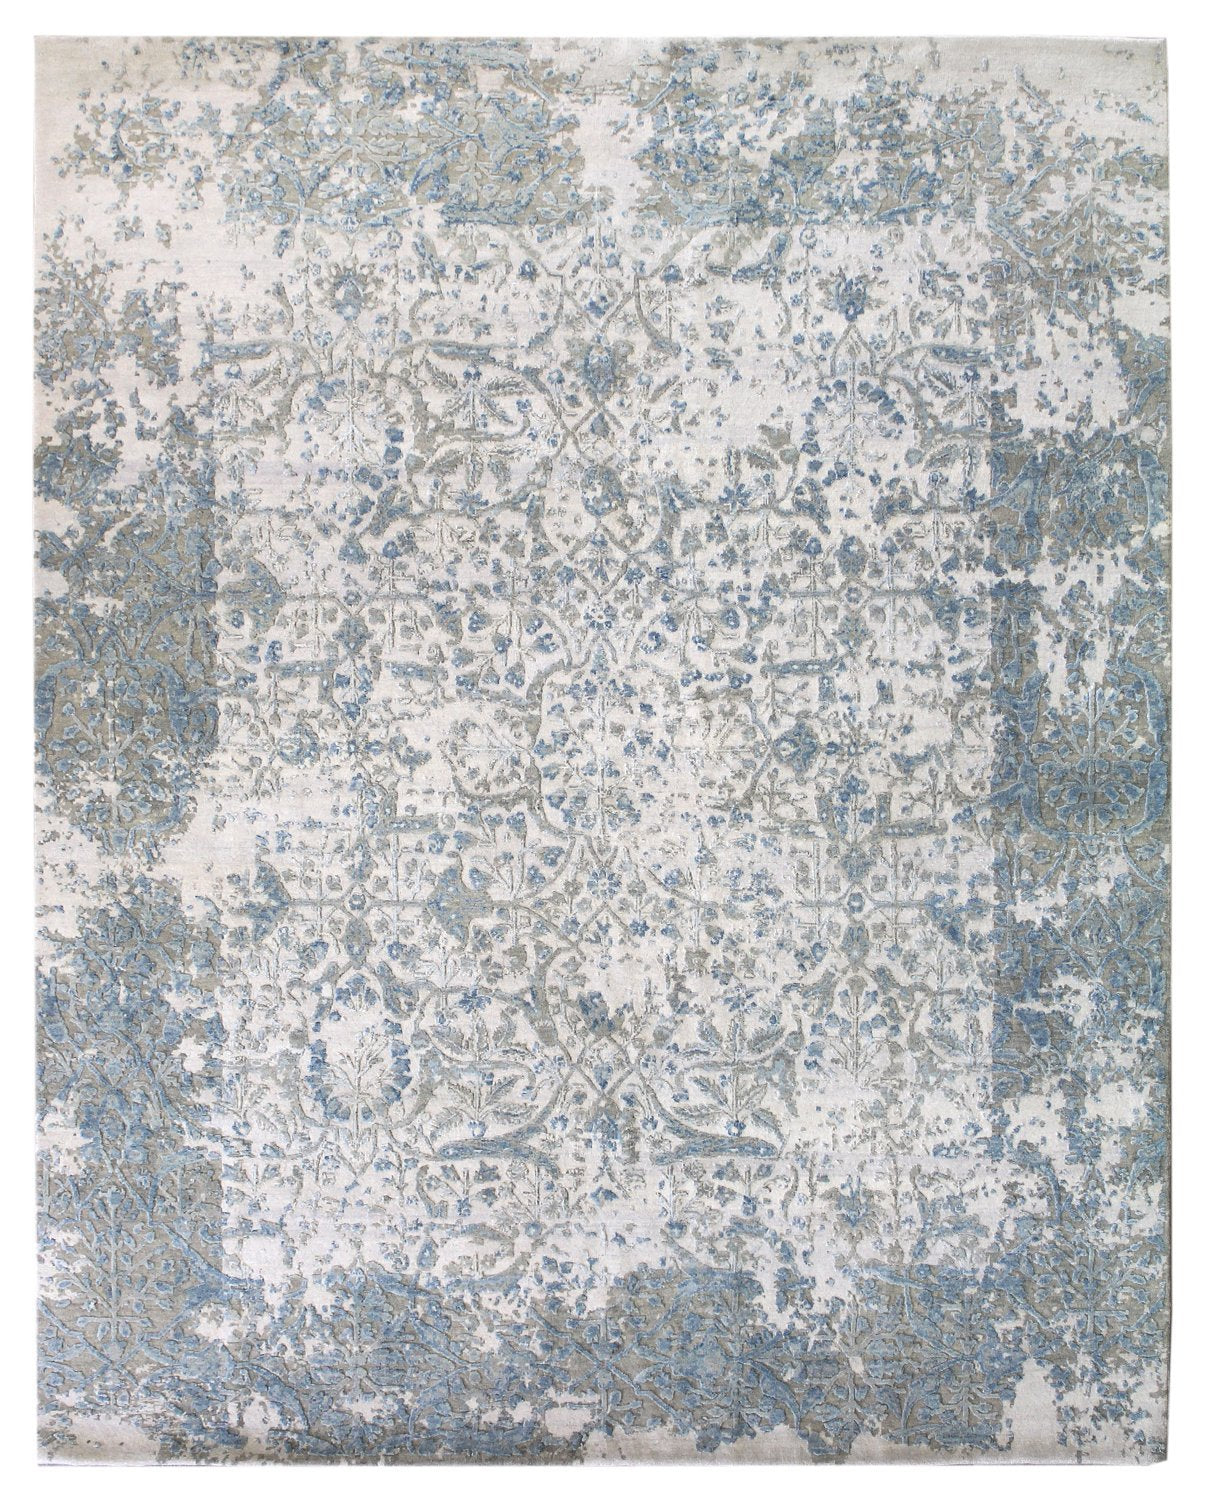 Carved Arabesque Handwoven Transitional Rug